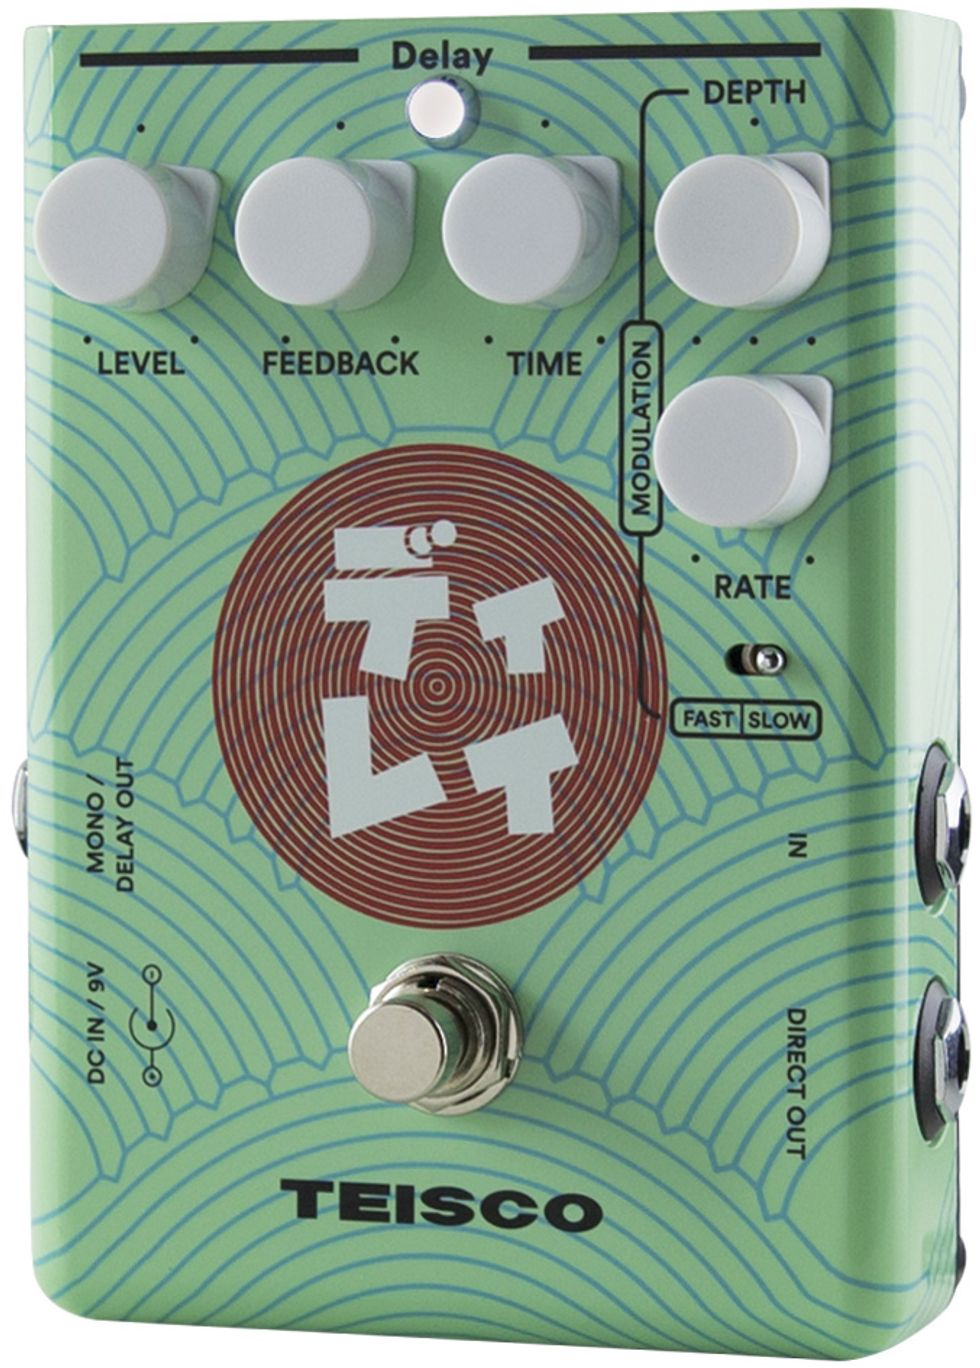 Teisco Delay Review